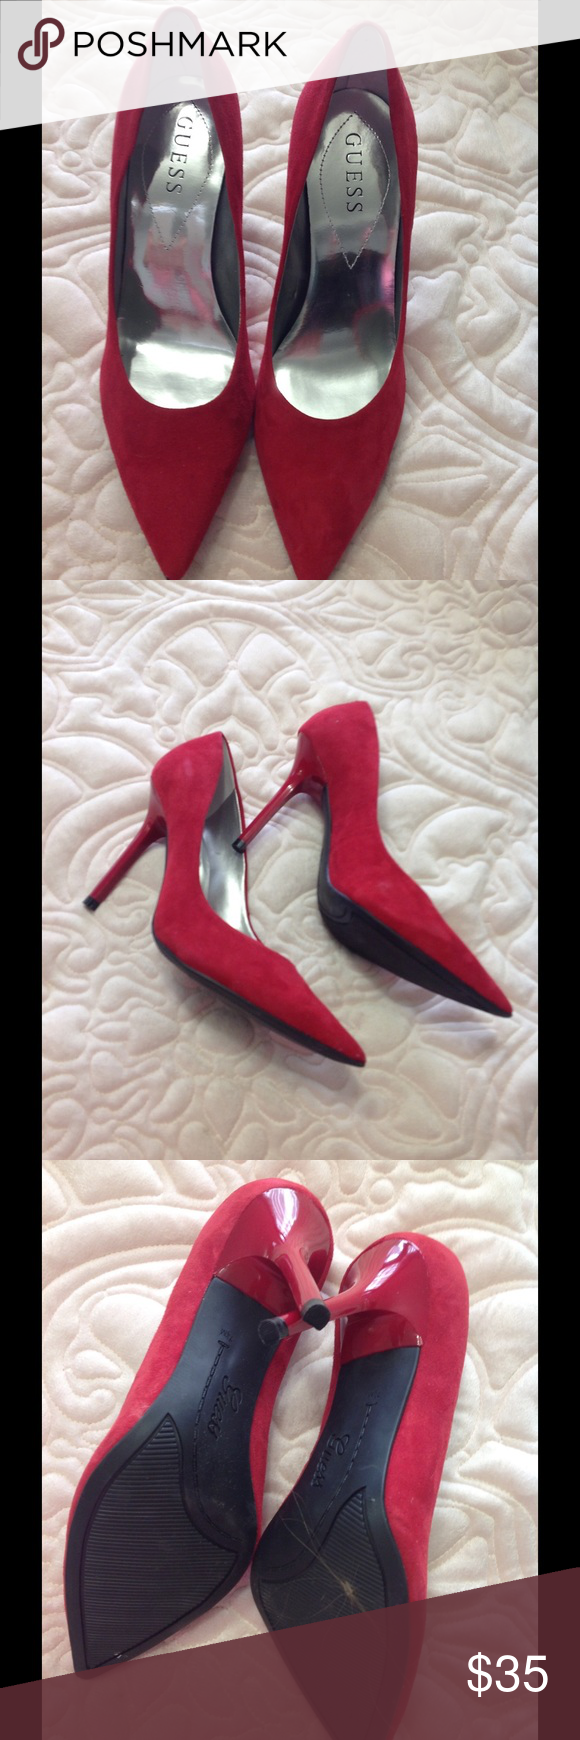 NEW! GUESS Red Suede Pumps -Size 7.5 Brand new, never worn, no flaws, Size 7 1/2, GREAT FOR FALL!  Fast shipping! 😀 Guess Shoes Heels